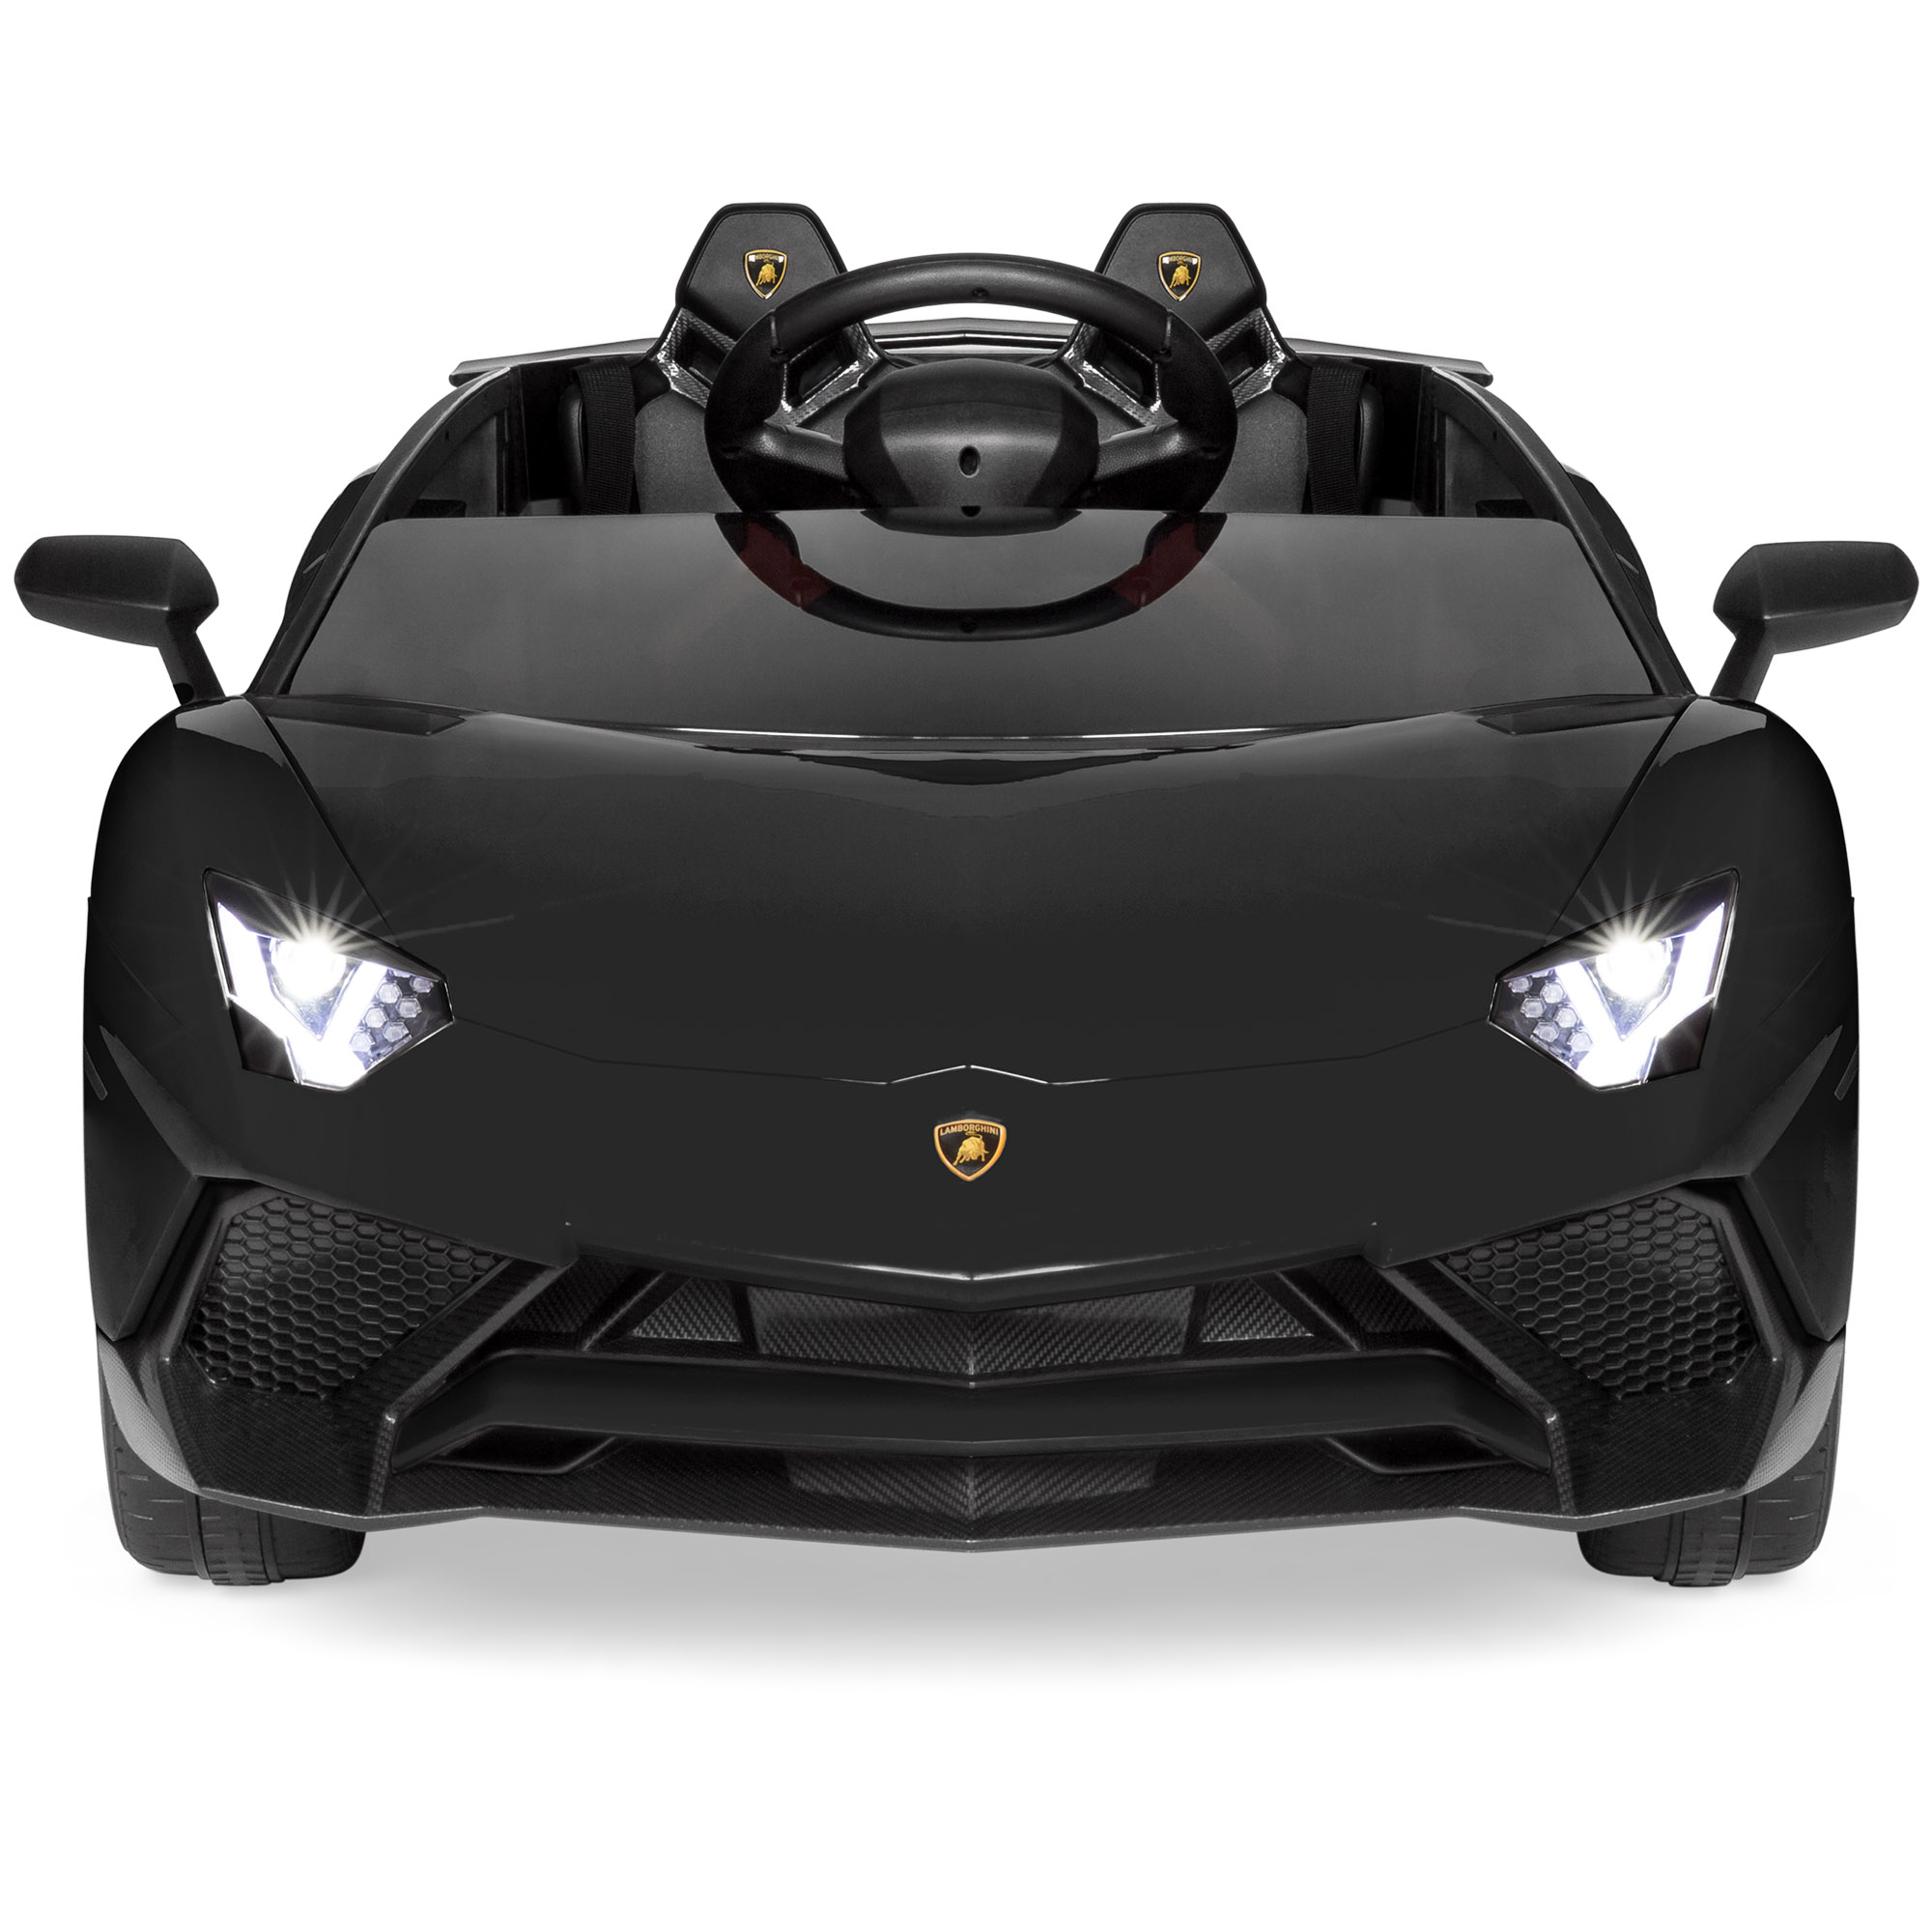 Best Choice Products Kids 12v Ride On Lamborghini Aventador Sv Sports Car Toy W Parent Control Aux Cable Black Walmart Com Walmart Com